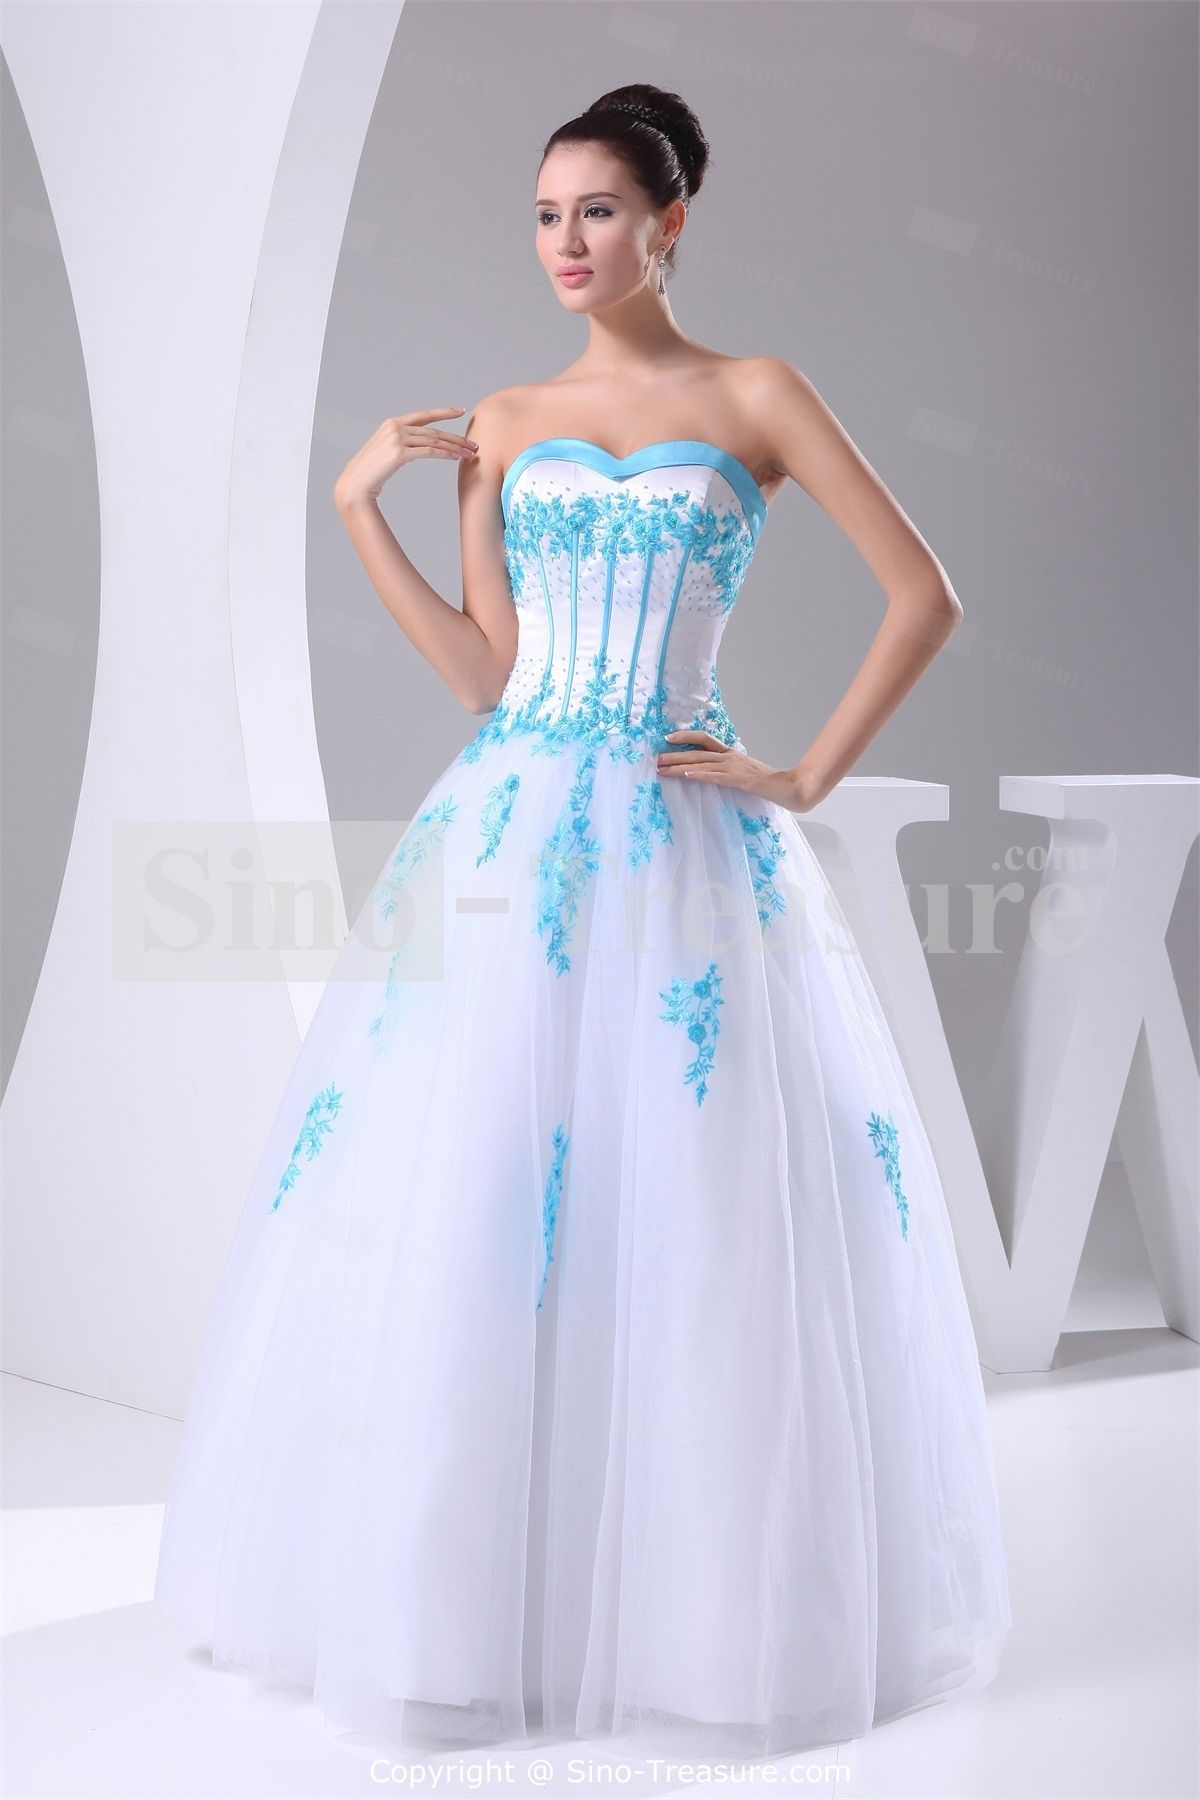 White Sweetheart Floor Length Satin Corset Back Wedding Dress With Color Wholesale Price